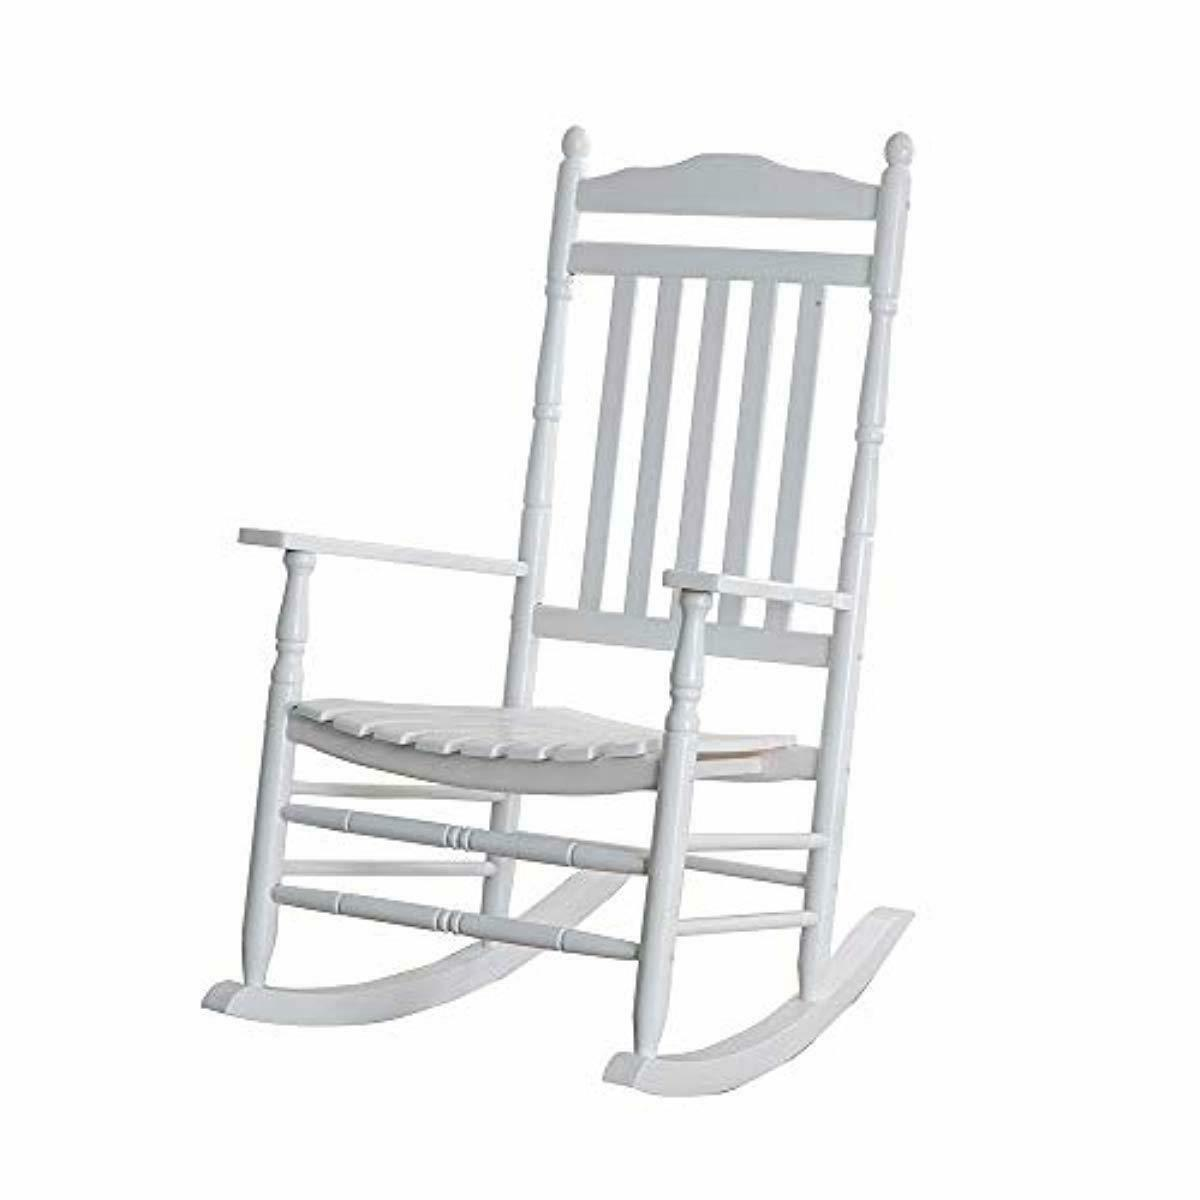 B&Z KD-22W Wooden chair Porch White Outdoor Traditional